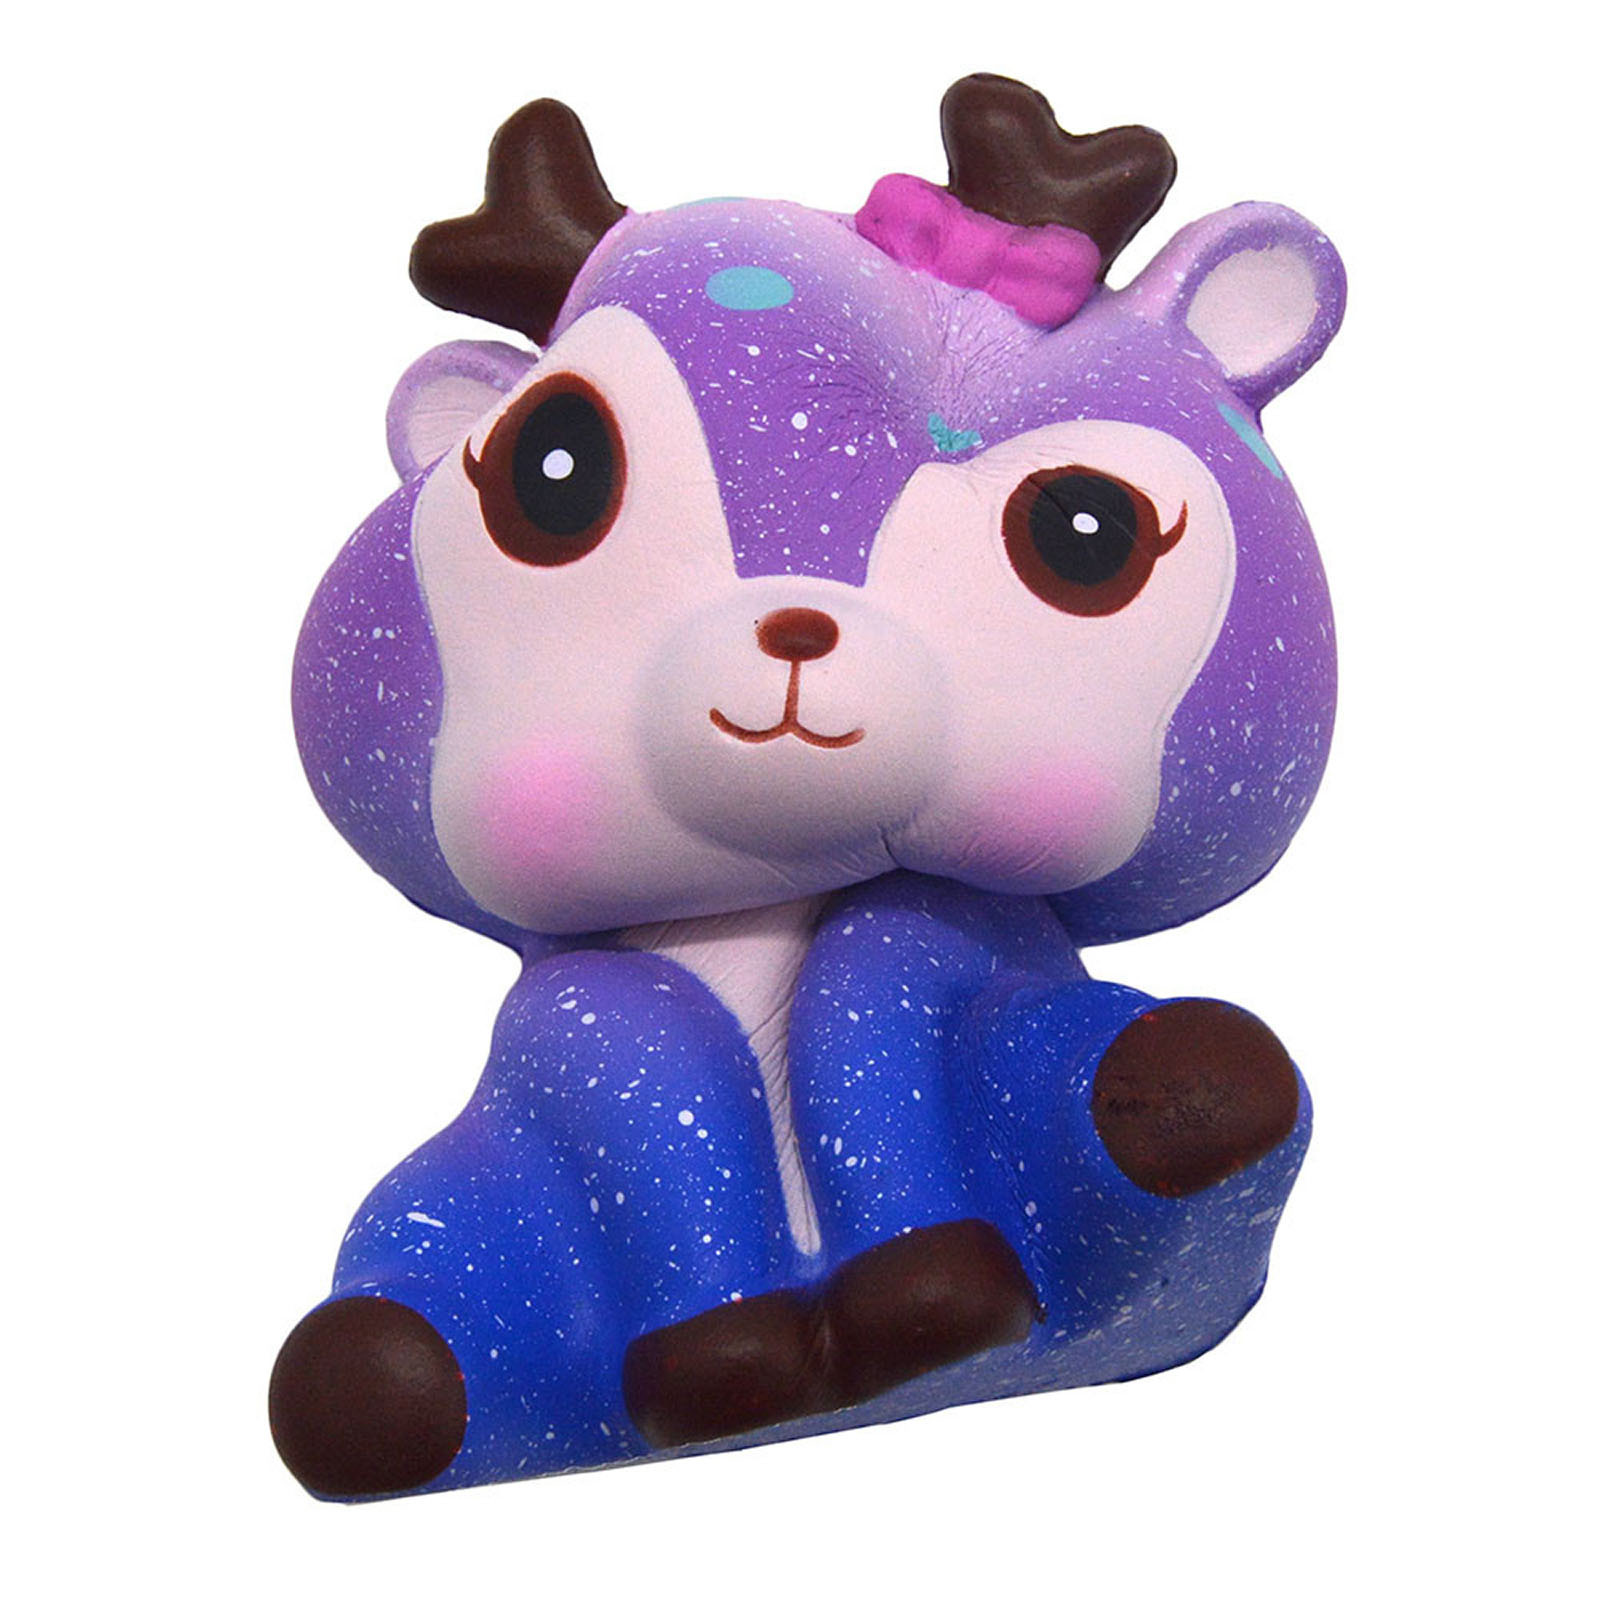 Baby's toys Xmas Kawaii Squishy Squeeze Toy Cartoon Galaxy Deer Slow Rising Cream Scented Stress Reliever Toys fidget toys funny enlarge